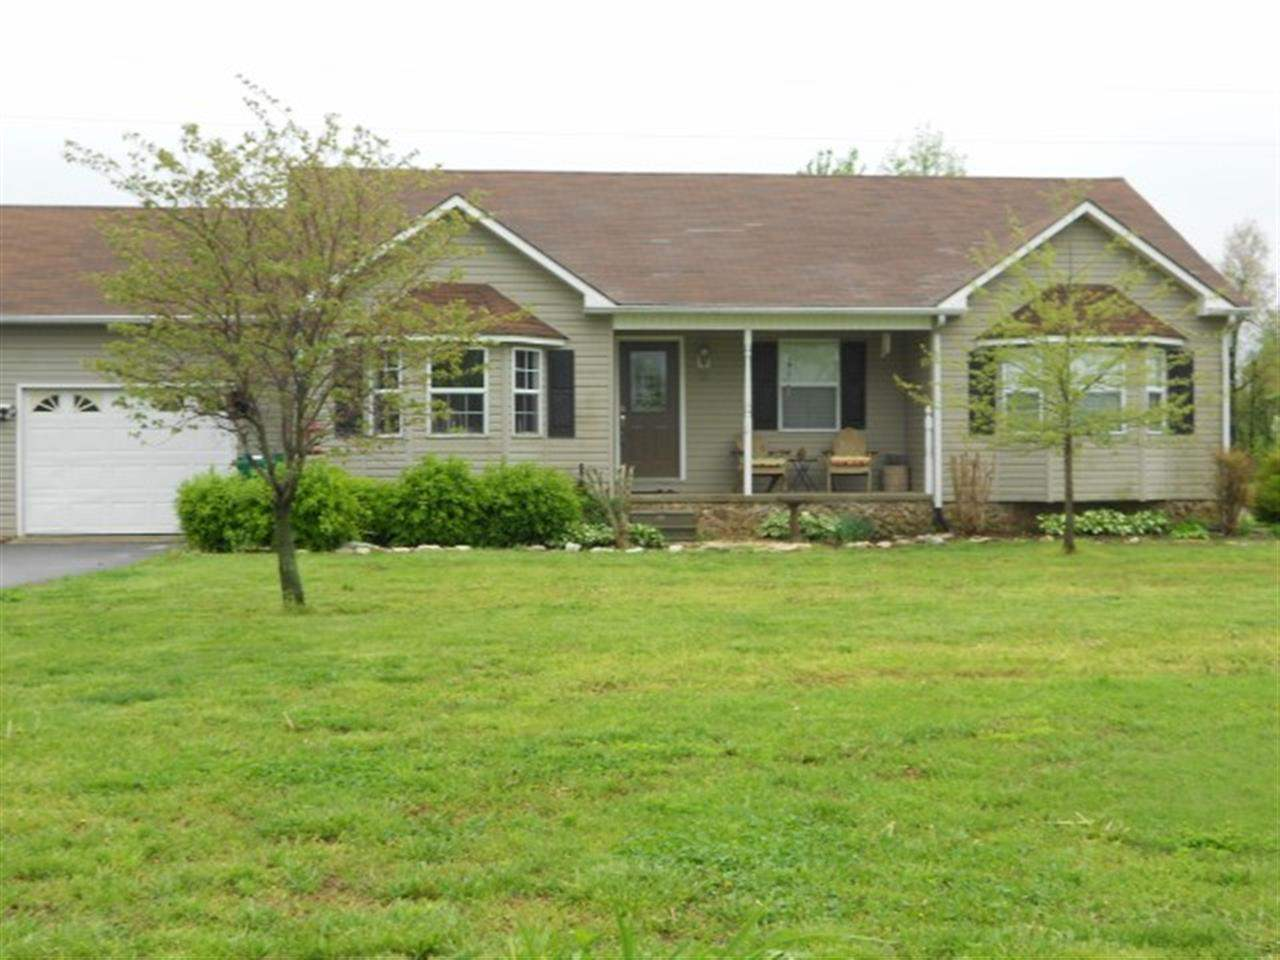 Real Estate for Sale, ListingId: 26679737, Hickory, KY  42051